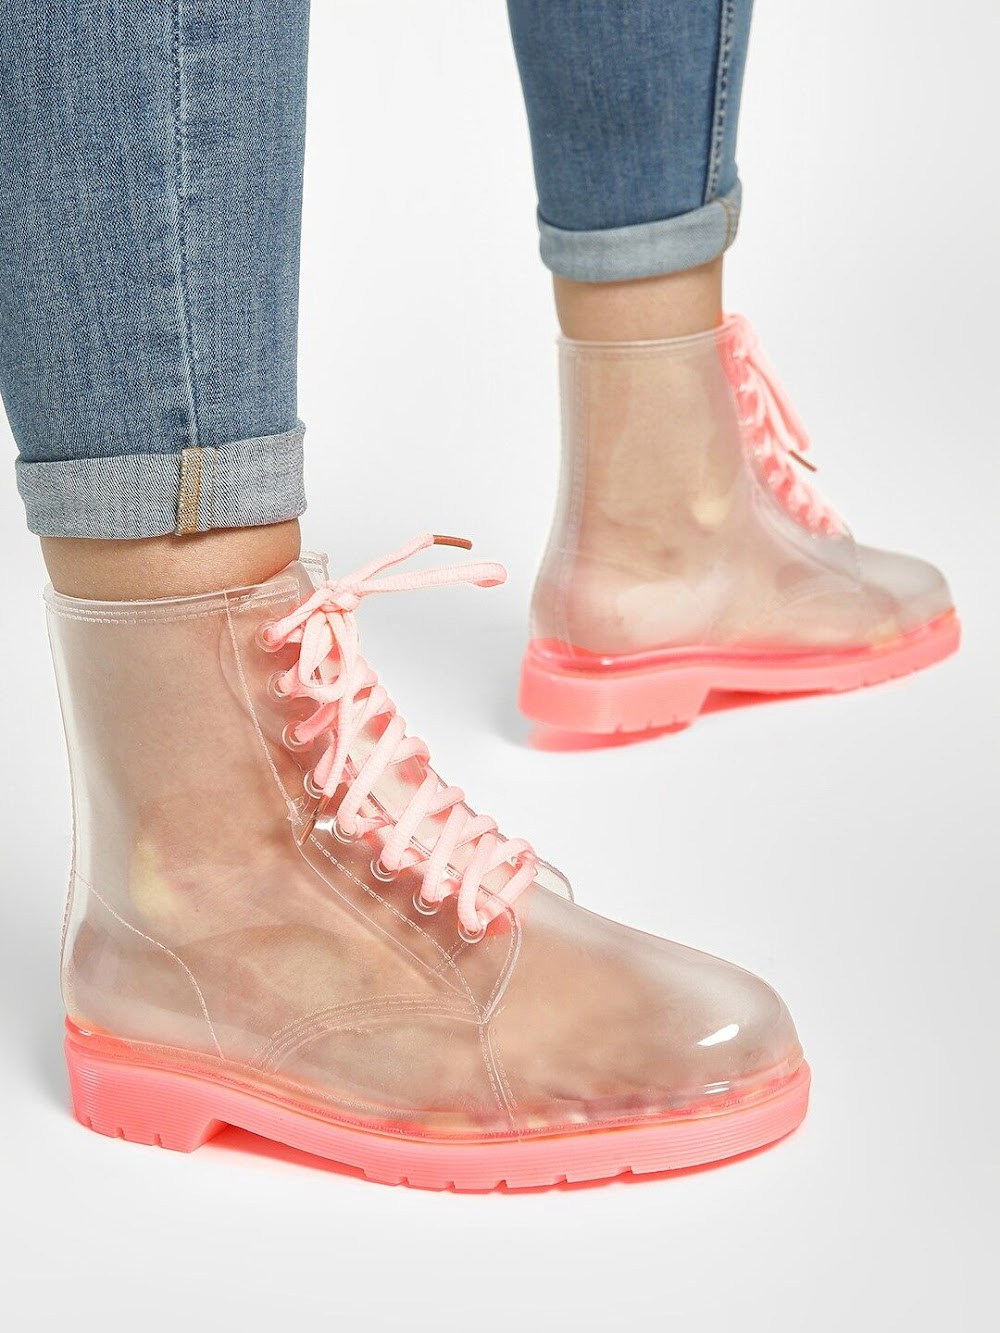 how-to-look-cool-this-monsoon-boots_image